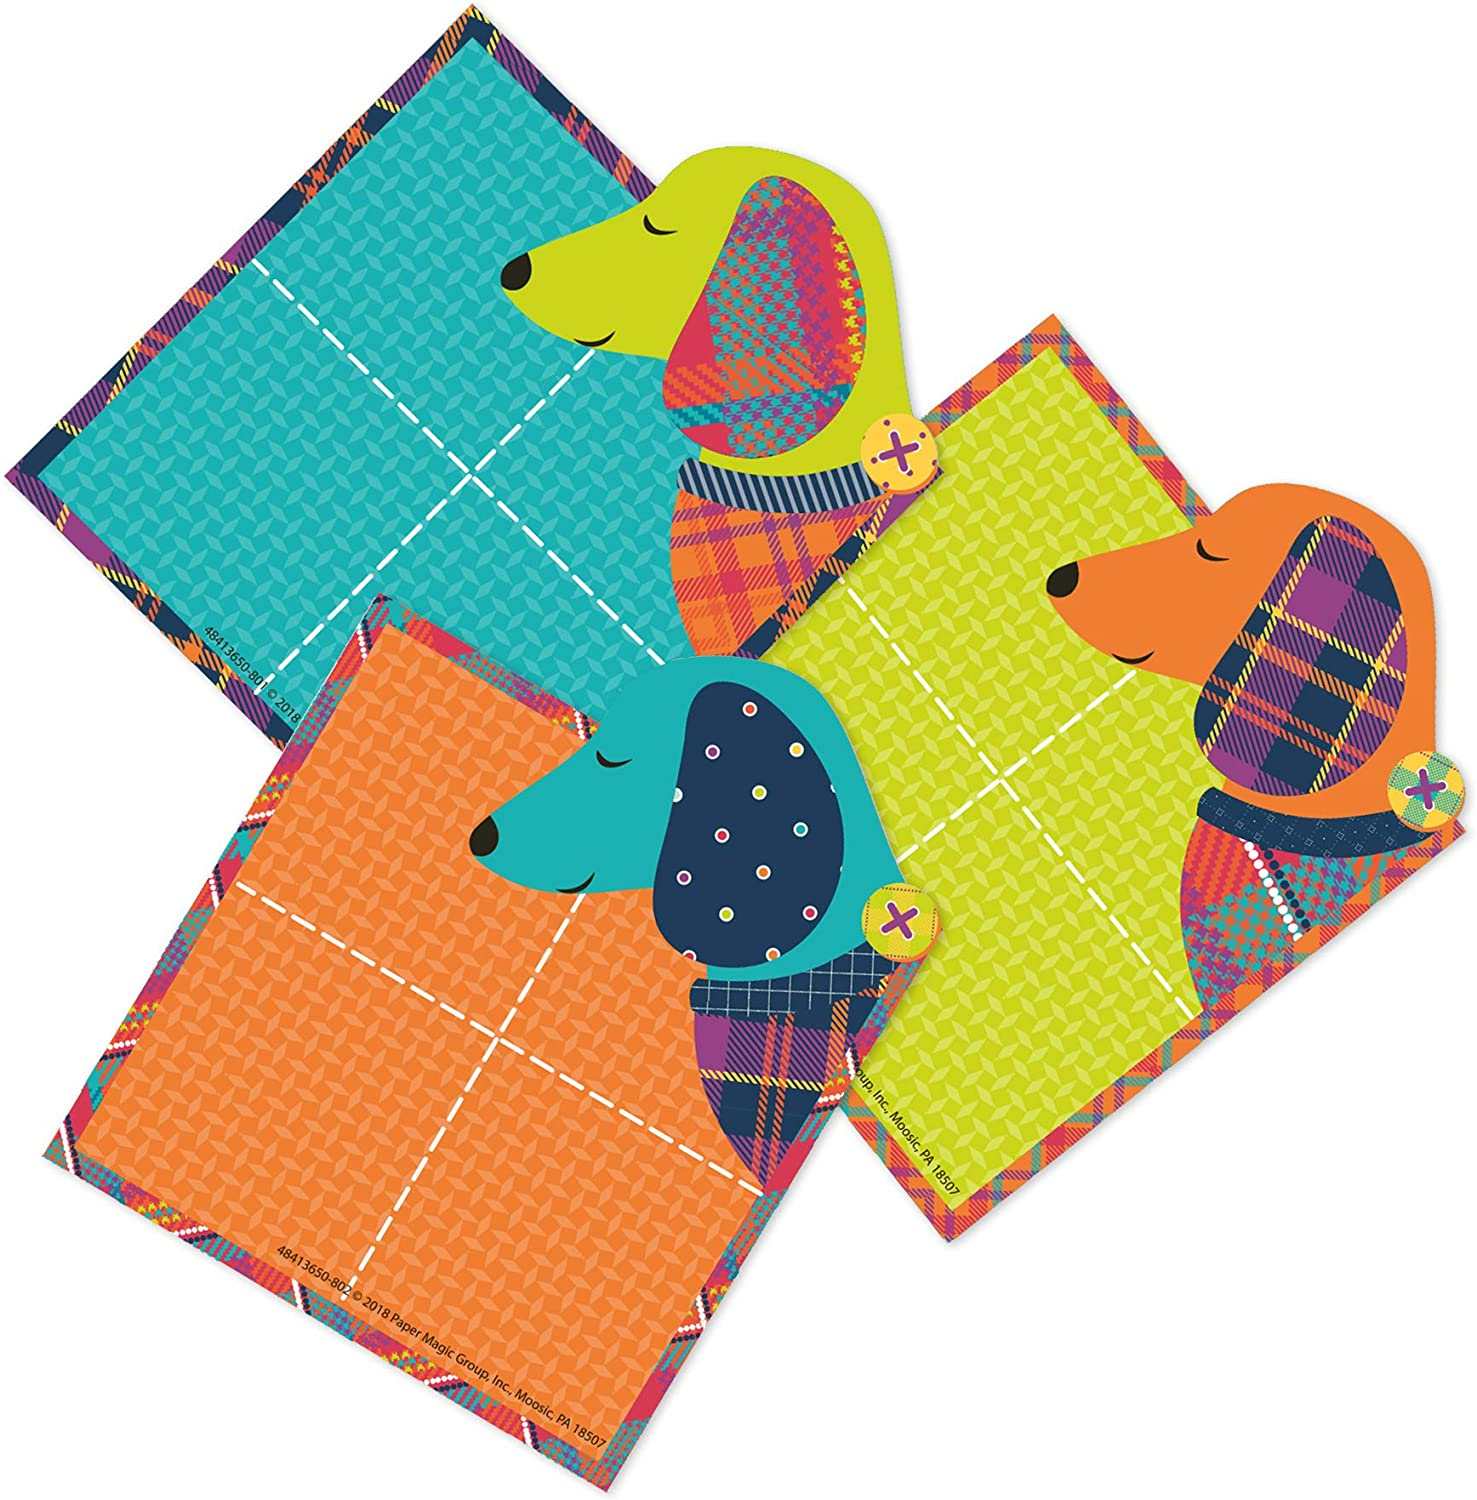 Eureka Multicolor Plaid Dog Themed Square Bulletin Board and Classroom Decorations, 36pcs, 5.5'' x 5.5''